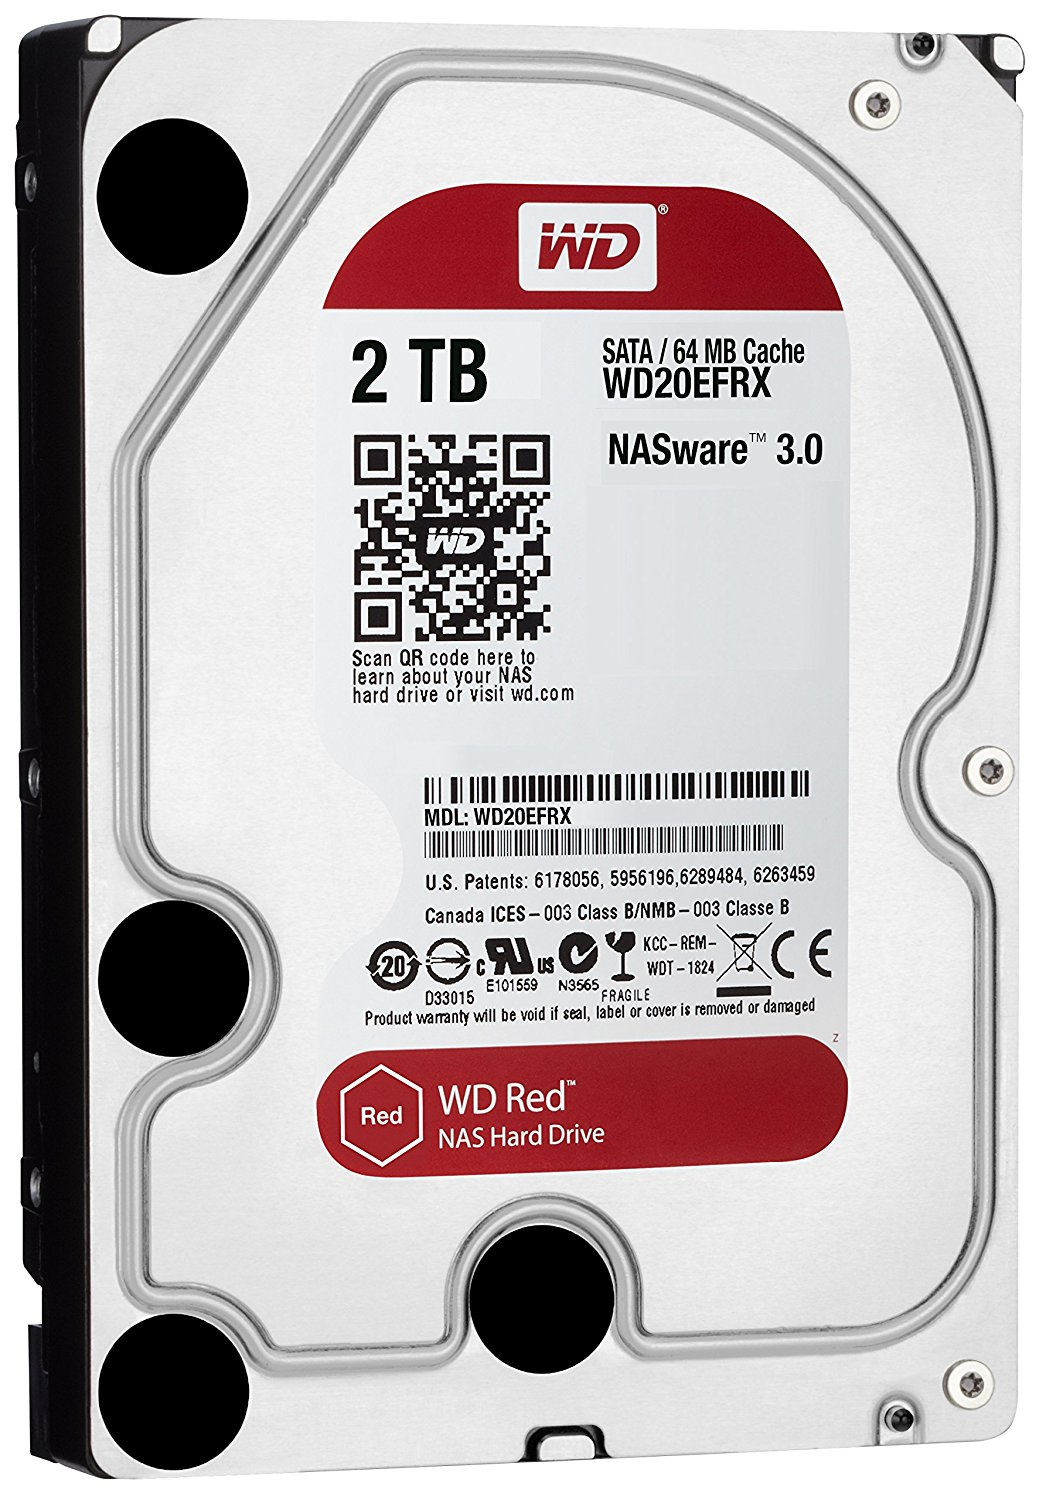 Ổ cứng gắn trong DESKTOP WD Red 2TB, 3.5, SATA 3, 256MB Cache, 5400RPM, 3Y WTY_WD20EFAX